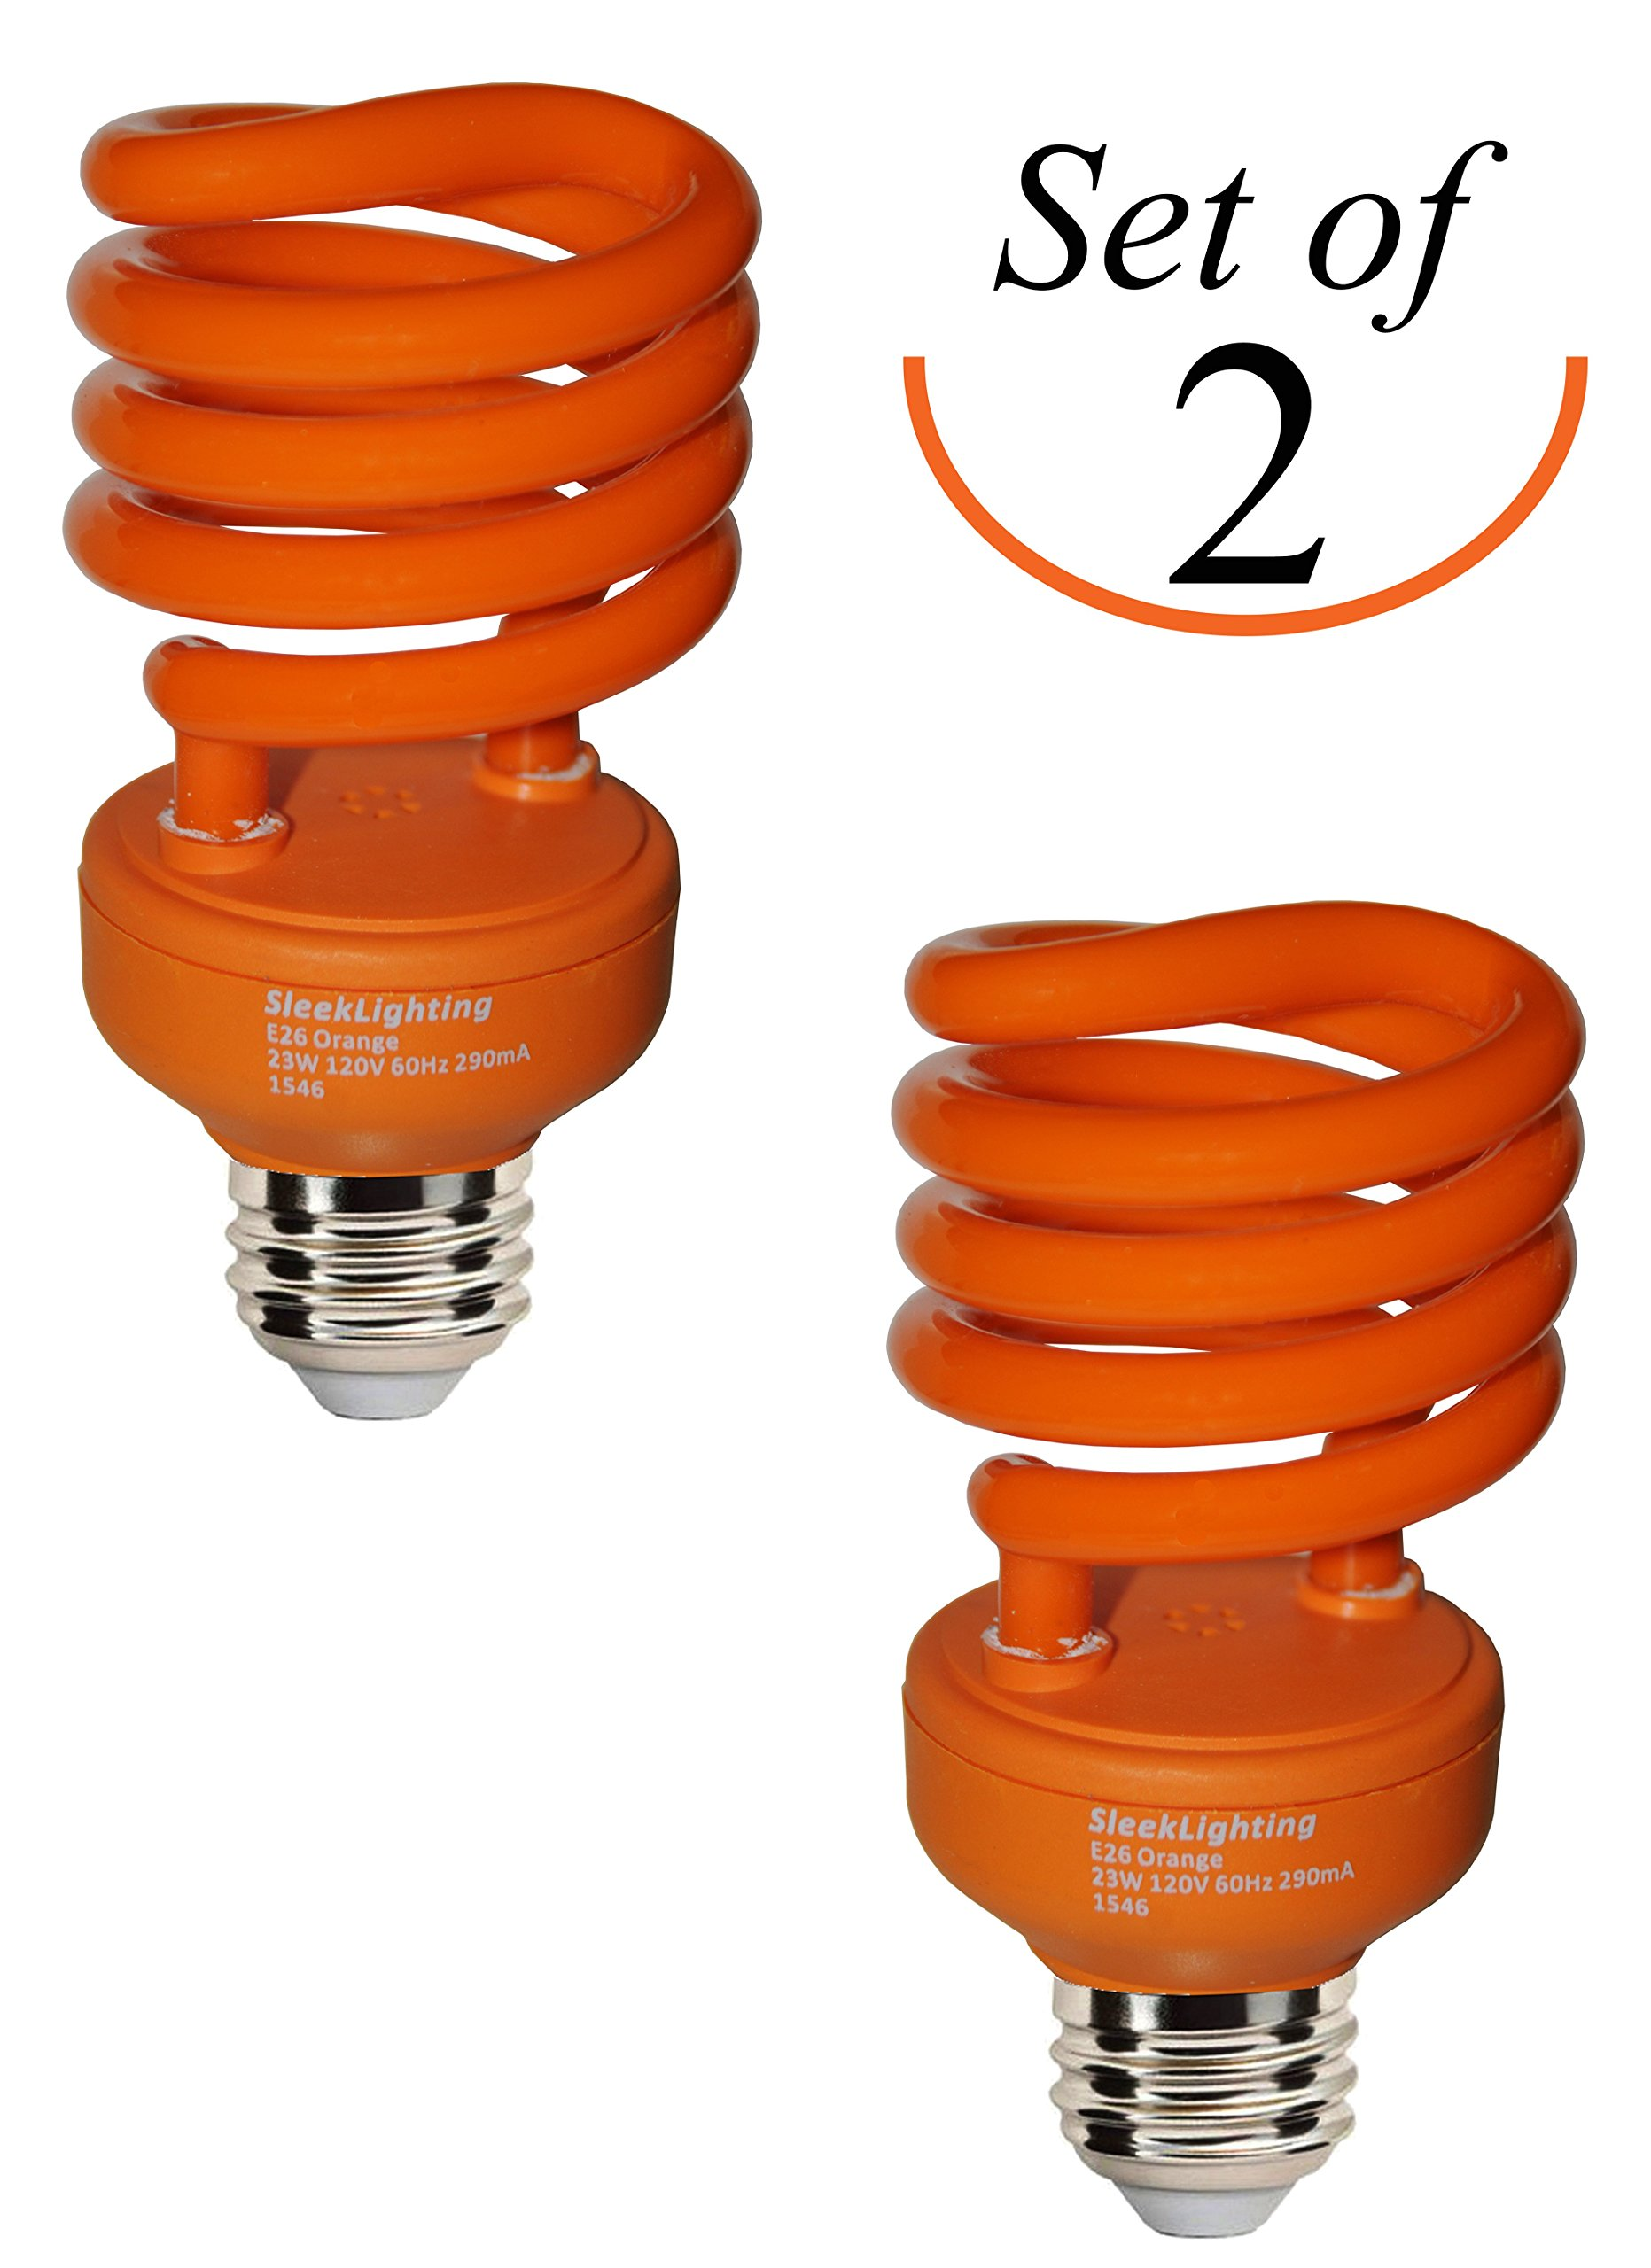 SleekLighting 23 Watt T2 ORANGE Light Spiral CFL Light Bulb, 120V, E26 Medium Base-Energy Saver (Pack of 2)